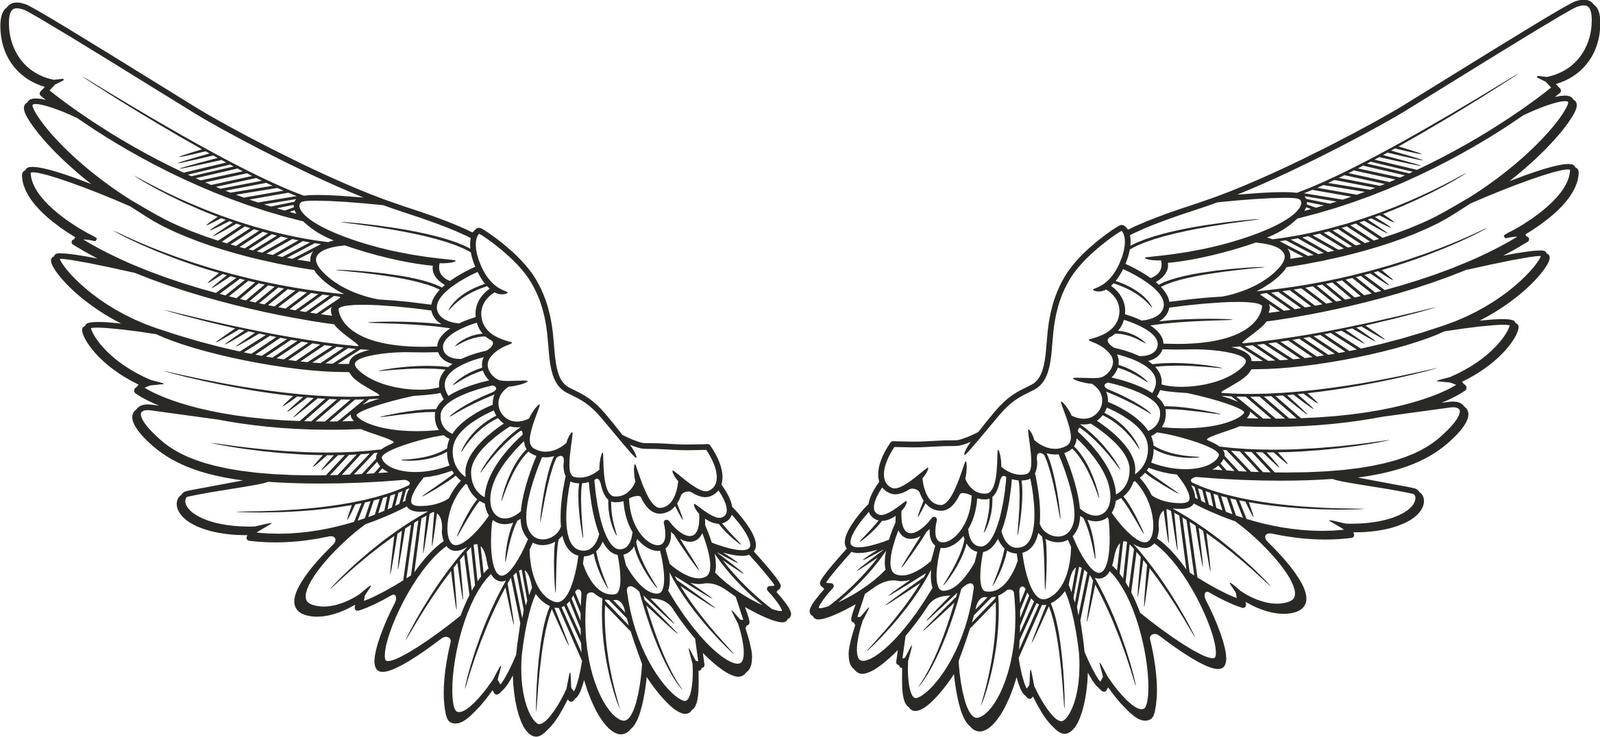 Angel wings clipart black and white 2 » Clipart Portal.